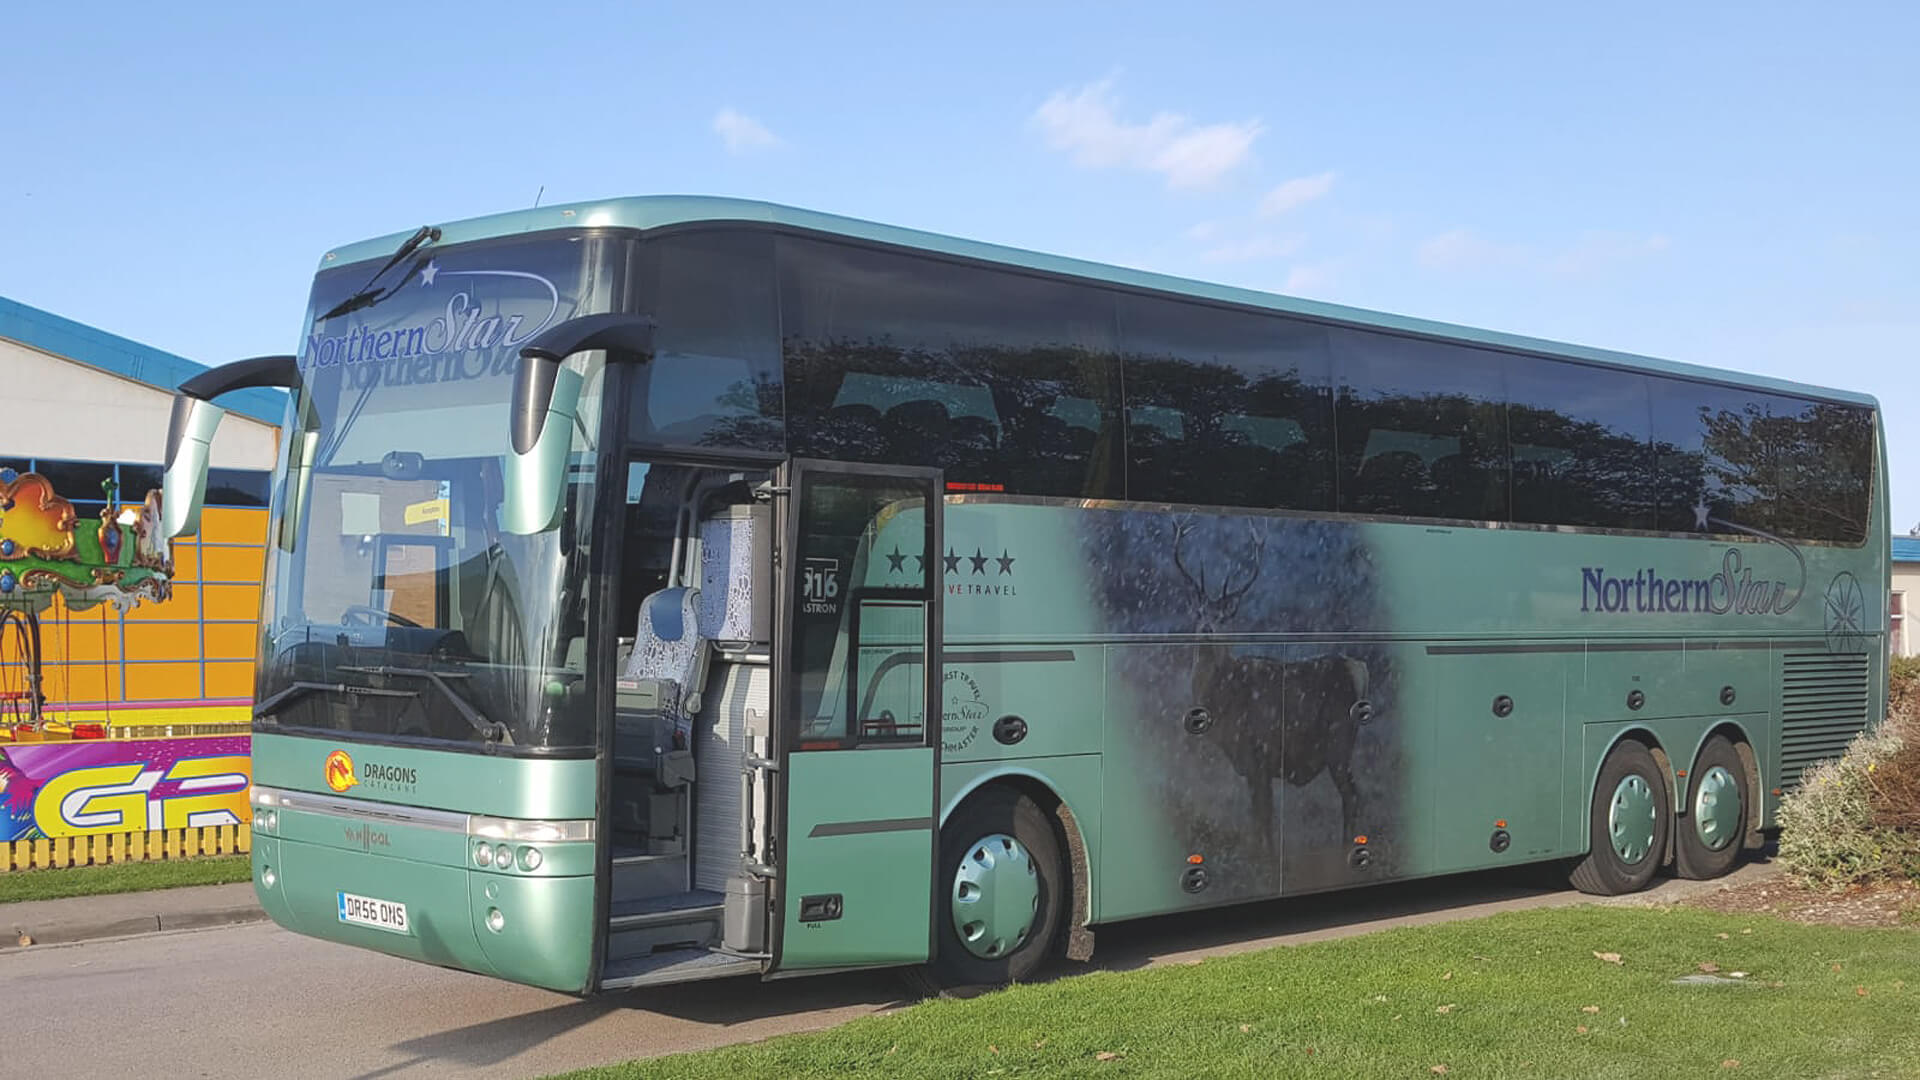 Northern Star Coach Travel